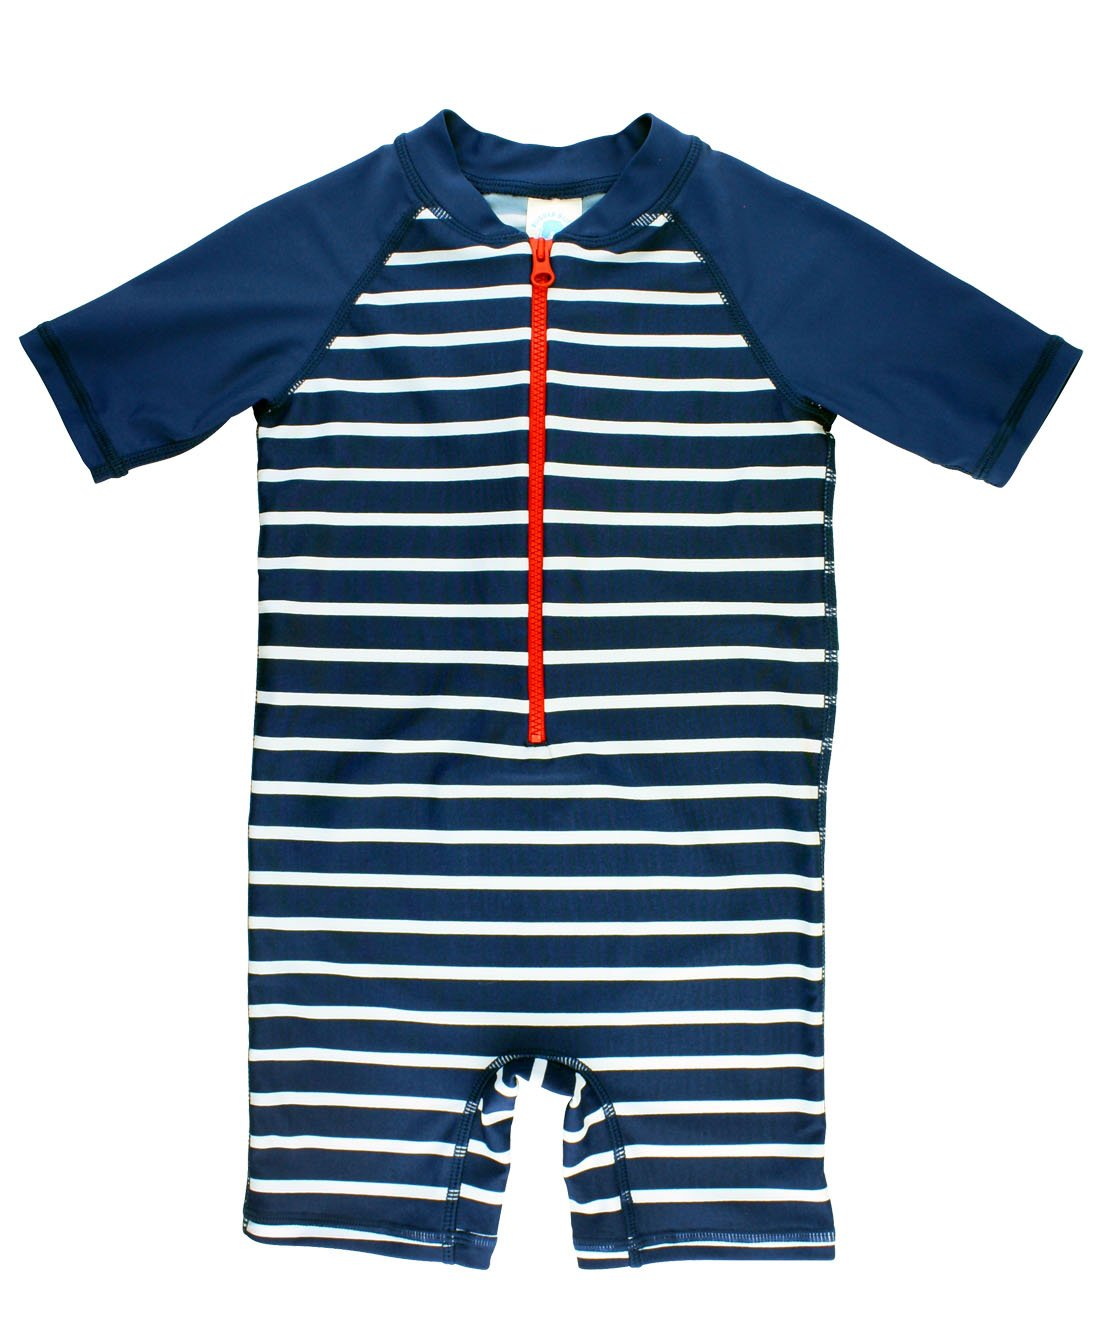 RuggedButts Baby/Toddler Boys Navy Stripe One Piece UPF 50+ Baby Rash Guard Swimsuit Romper - 12-18m by RuggedButts